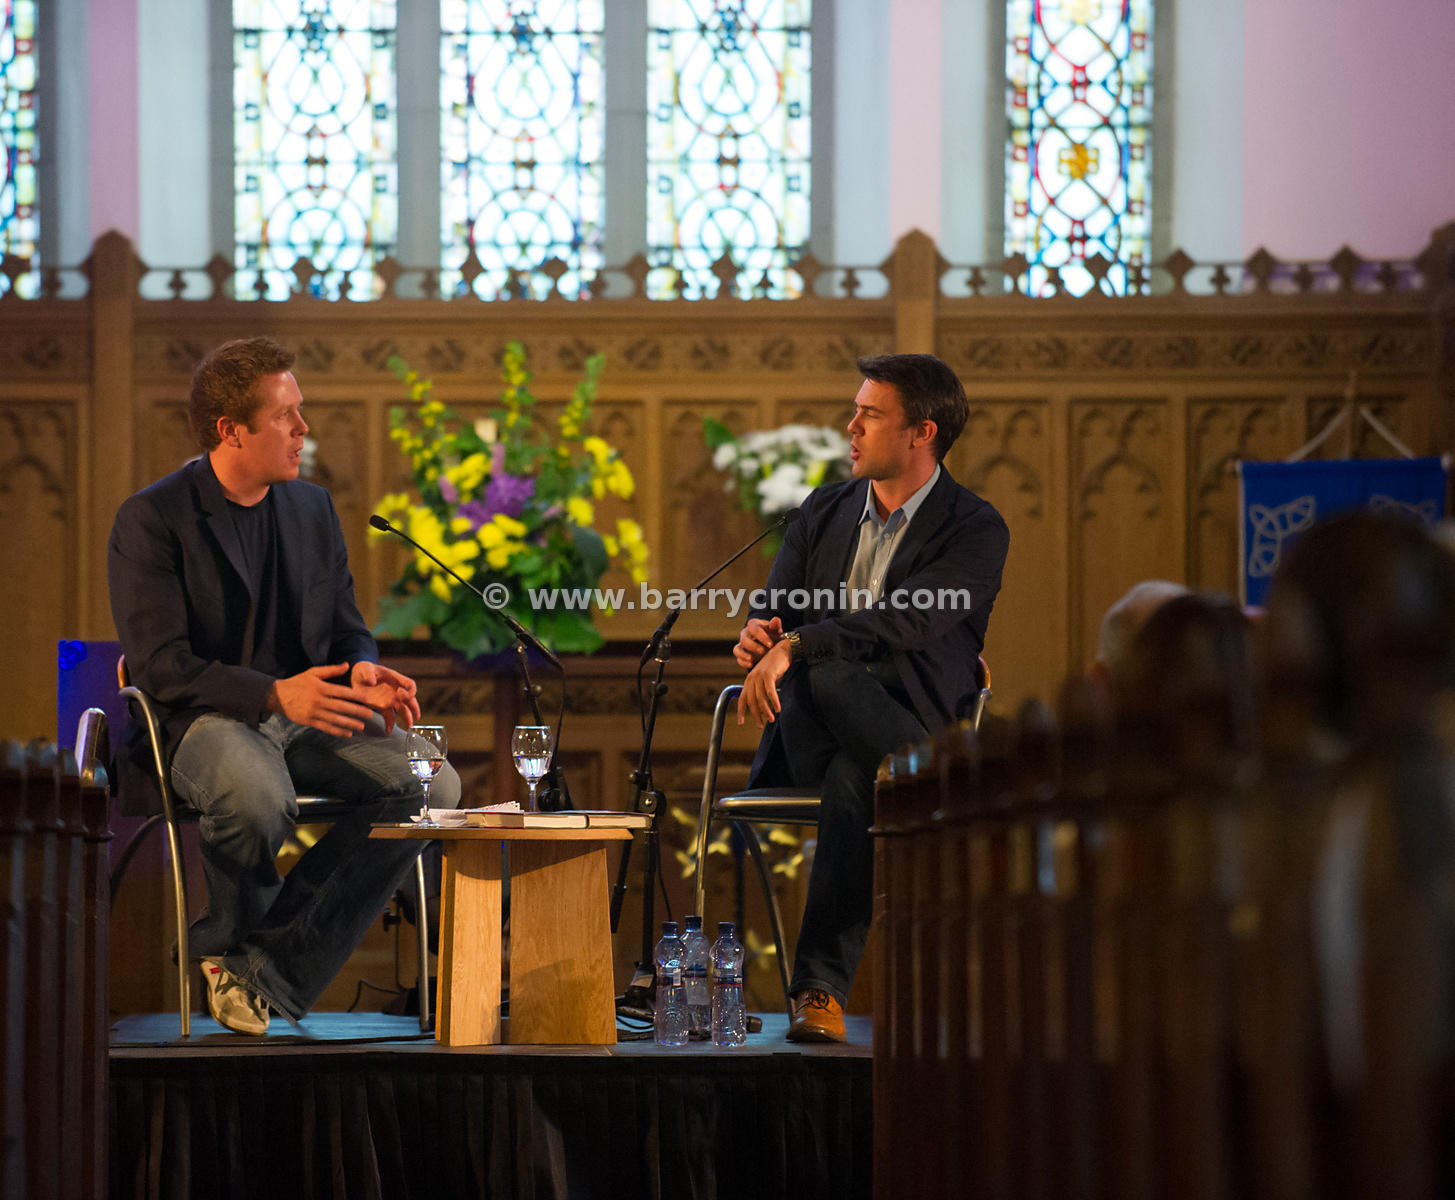 30th June, 2013. Kells Hay Festival, Kells, County Meath. Author Owen Sheers (R) this year's Hay Festival International Fello...